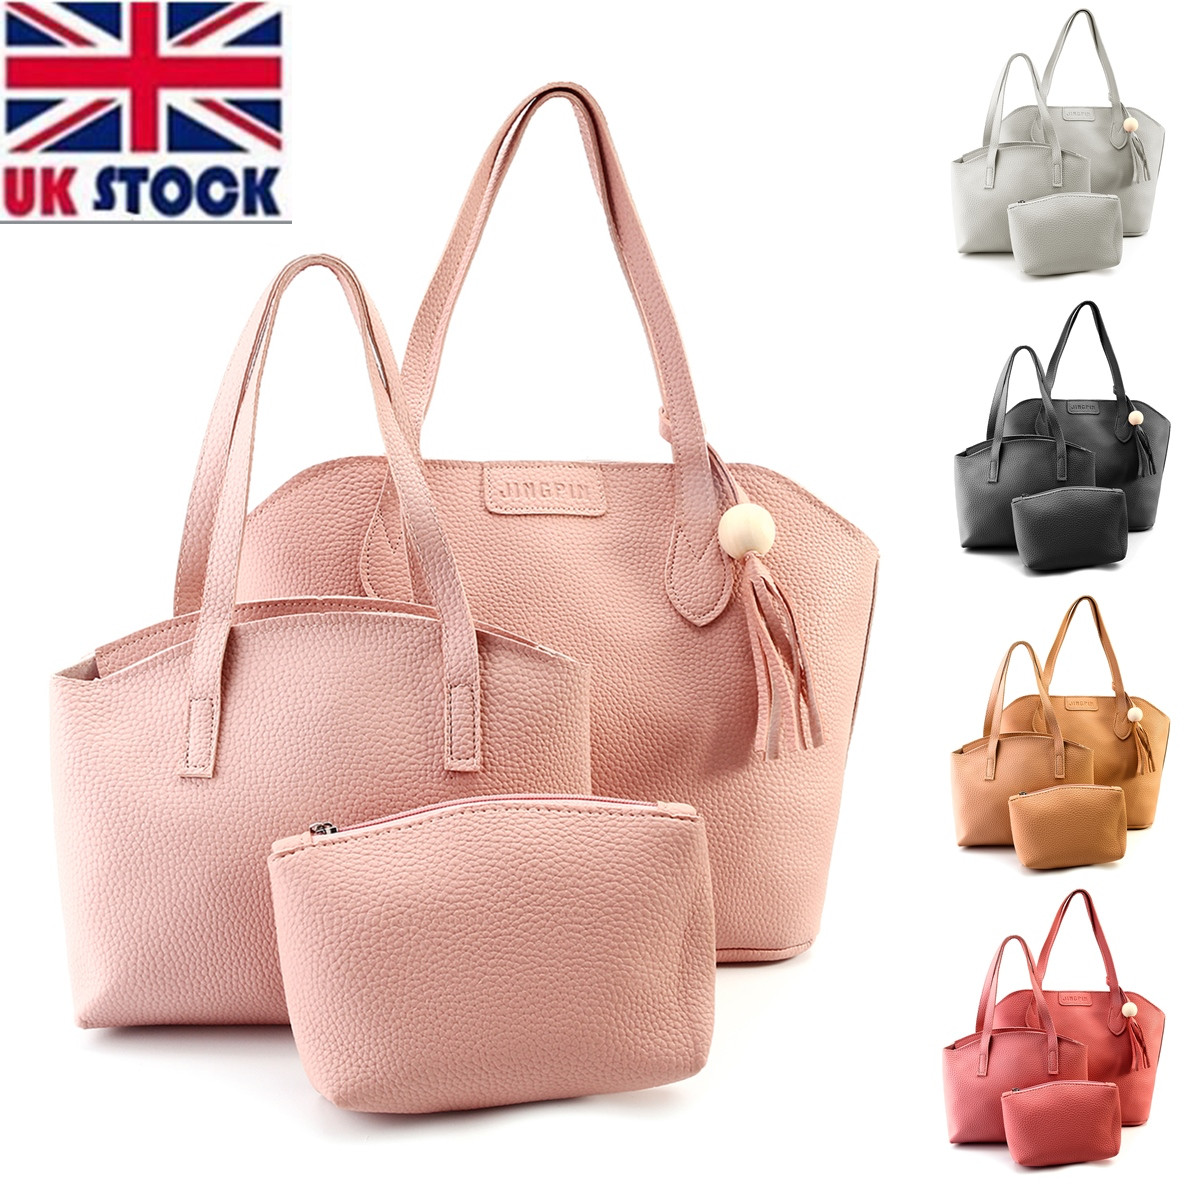 93d33ee9c64a Real Leather Handbags Sale Uk